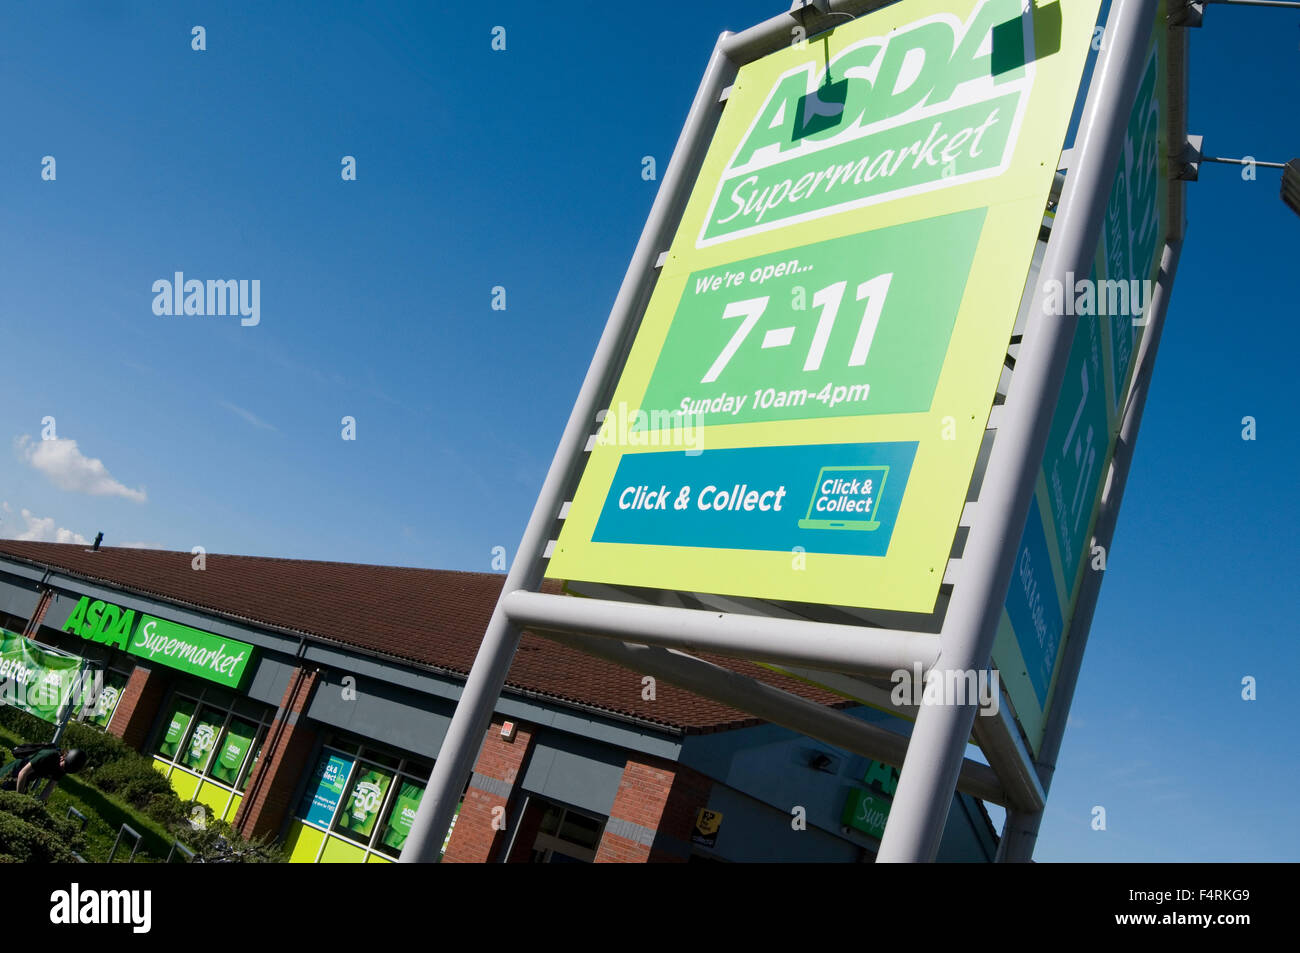 Food Netto Stock Photos & Food Netto Stock Images - Alamy